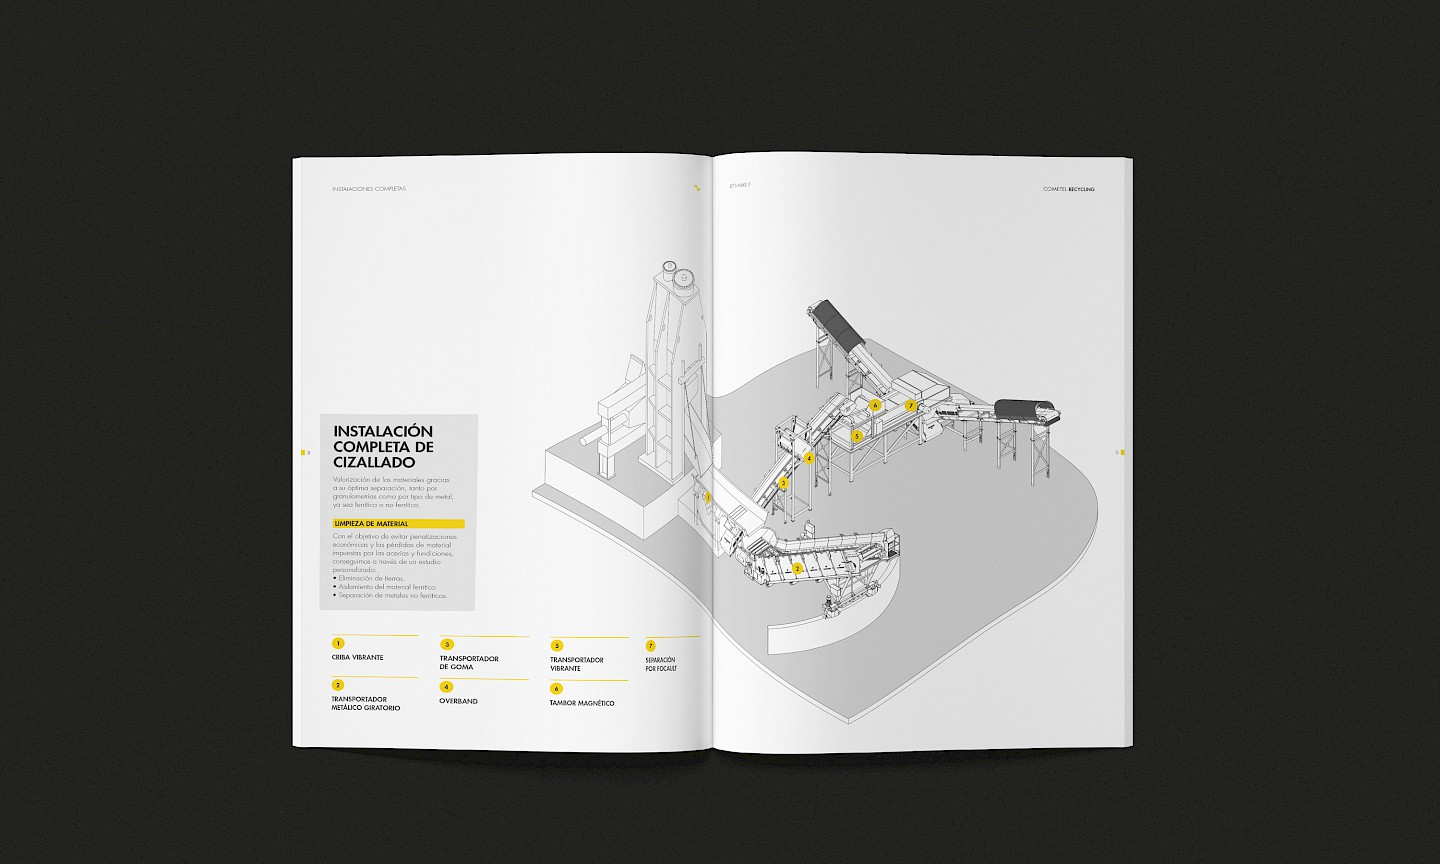 design move cometel 04 catalogo branding technology